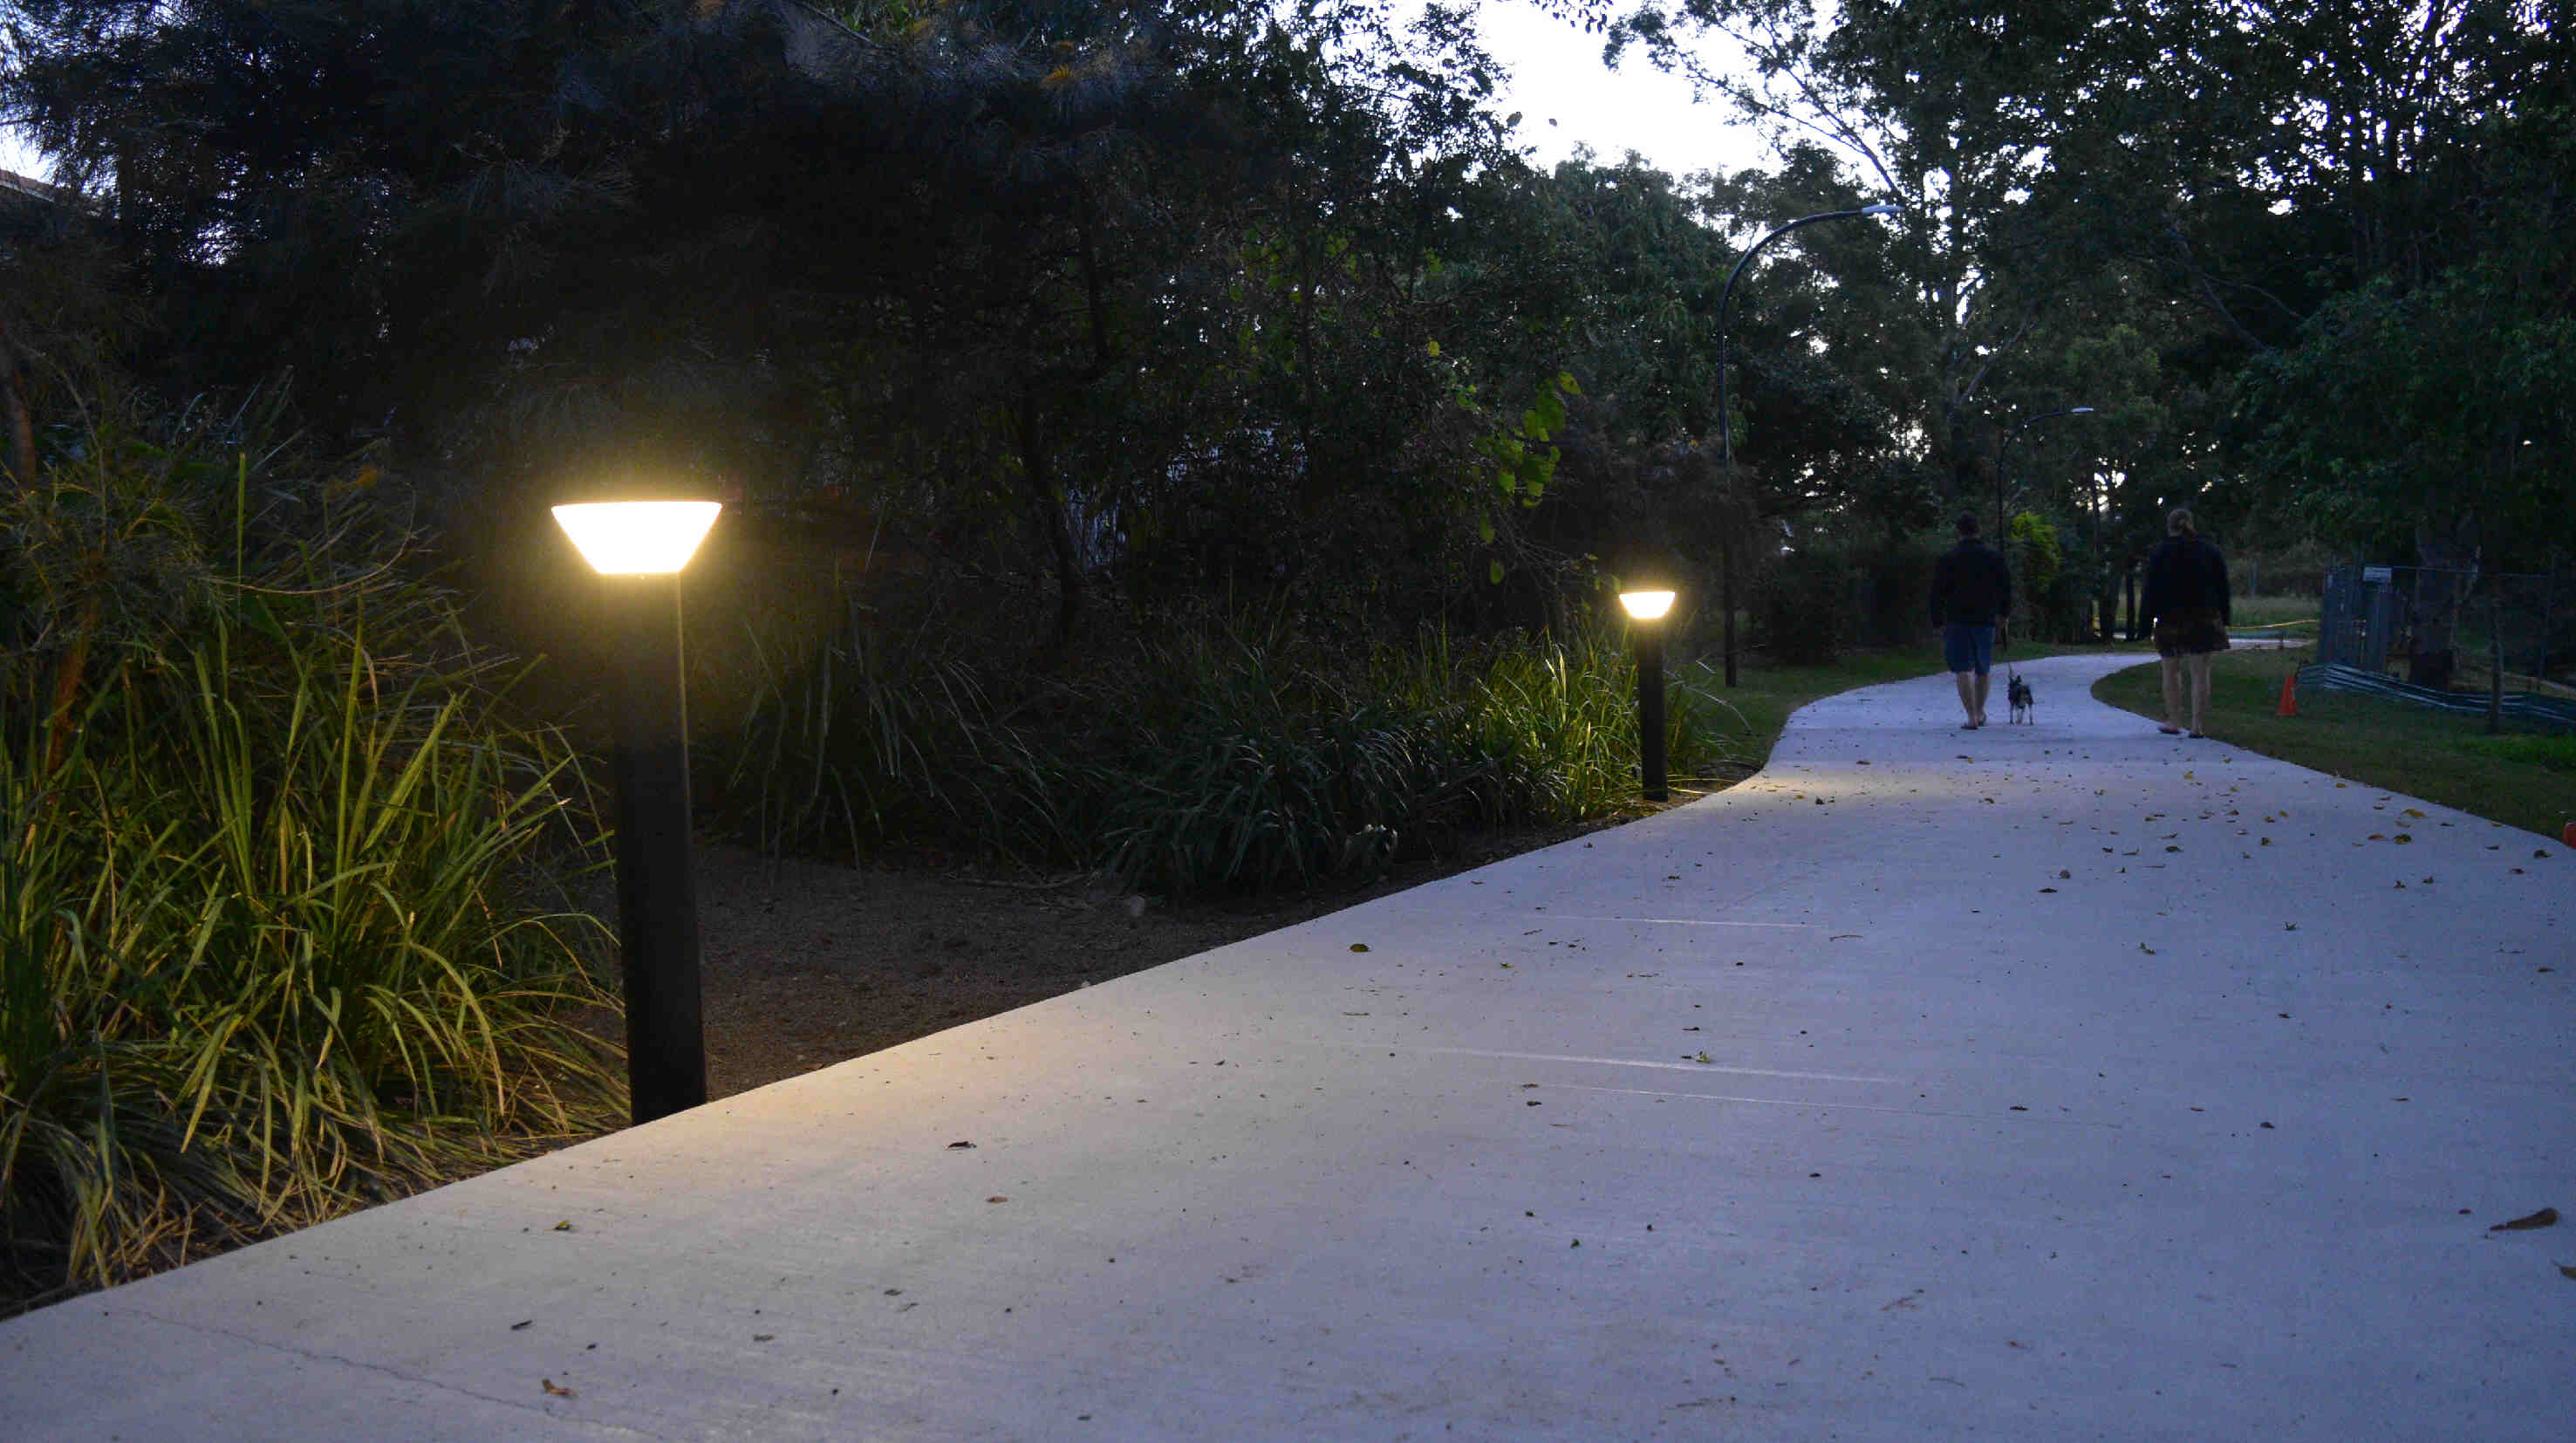 Buy quality solar lights blackfrog solar solar lights button to view our range of high quality solar powered bollard lights solar lights suitable mozeypictures Image collections